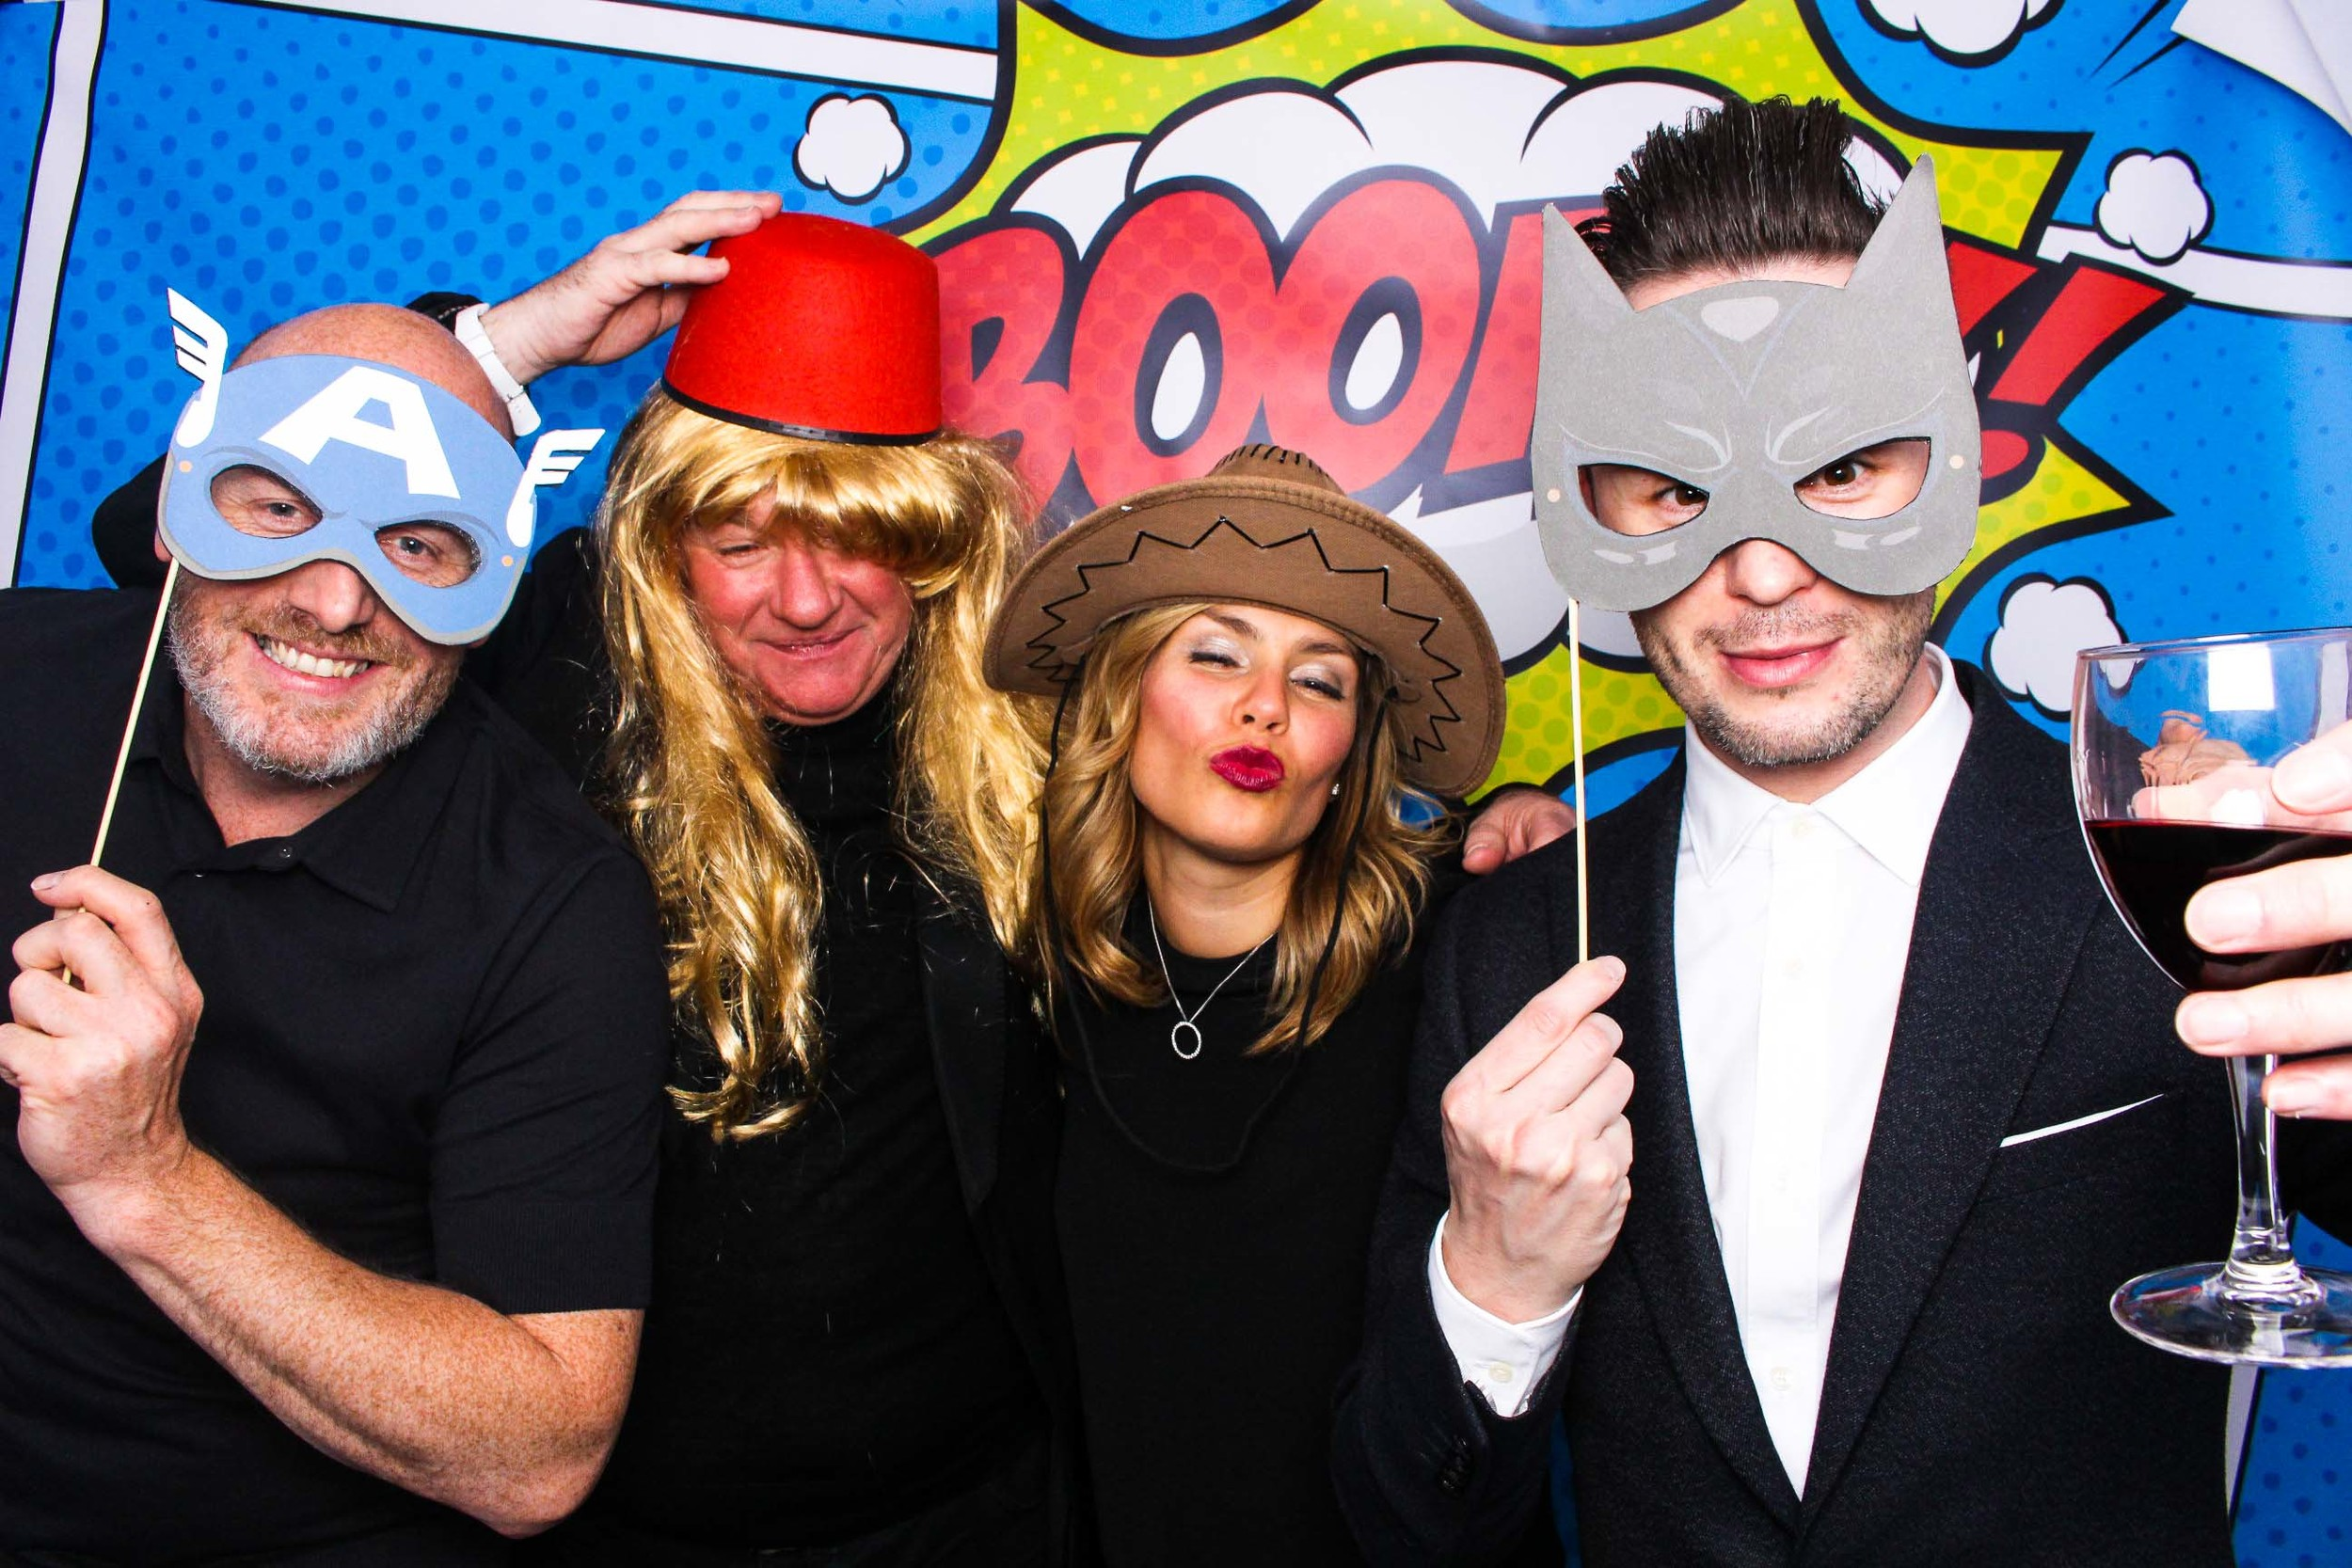 Fotoauto Photo Booth Hire - Shop Direct-141.jpg